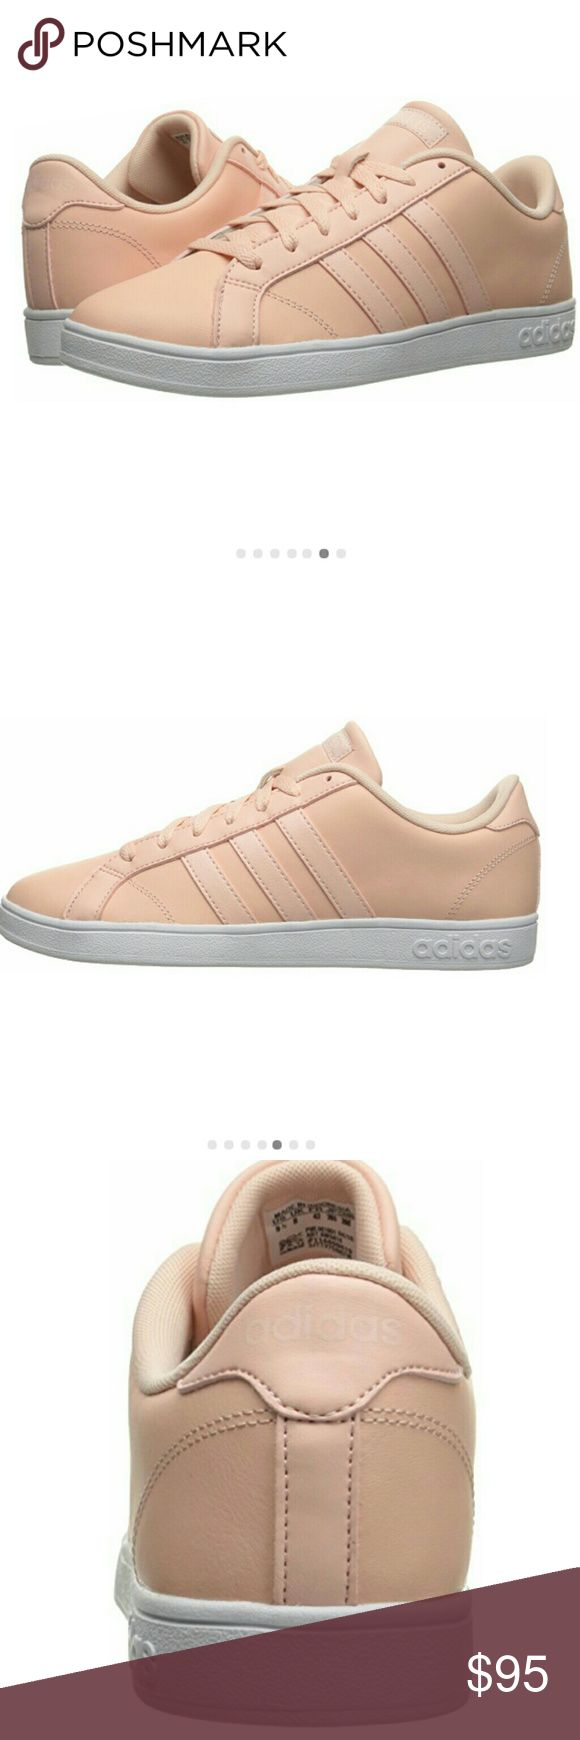 NWT Adidas NEO baseline vapor pink Clean, court-inspired fashion. These girls' shoes show off a performance-ready look in leather. Classic color combinations give them timeless style. NEW WITH BOX Shoes Sneakers